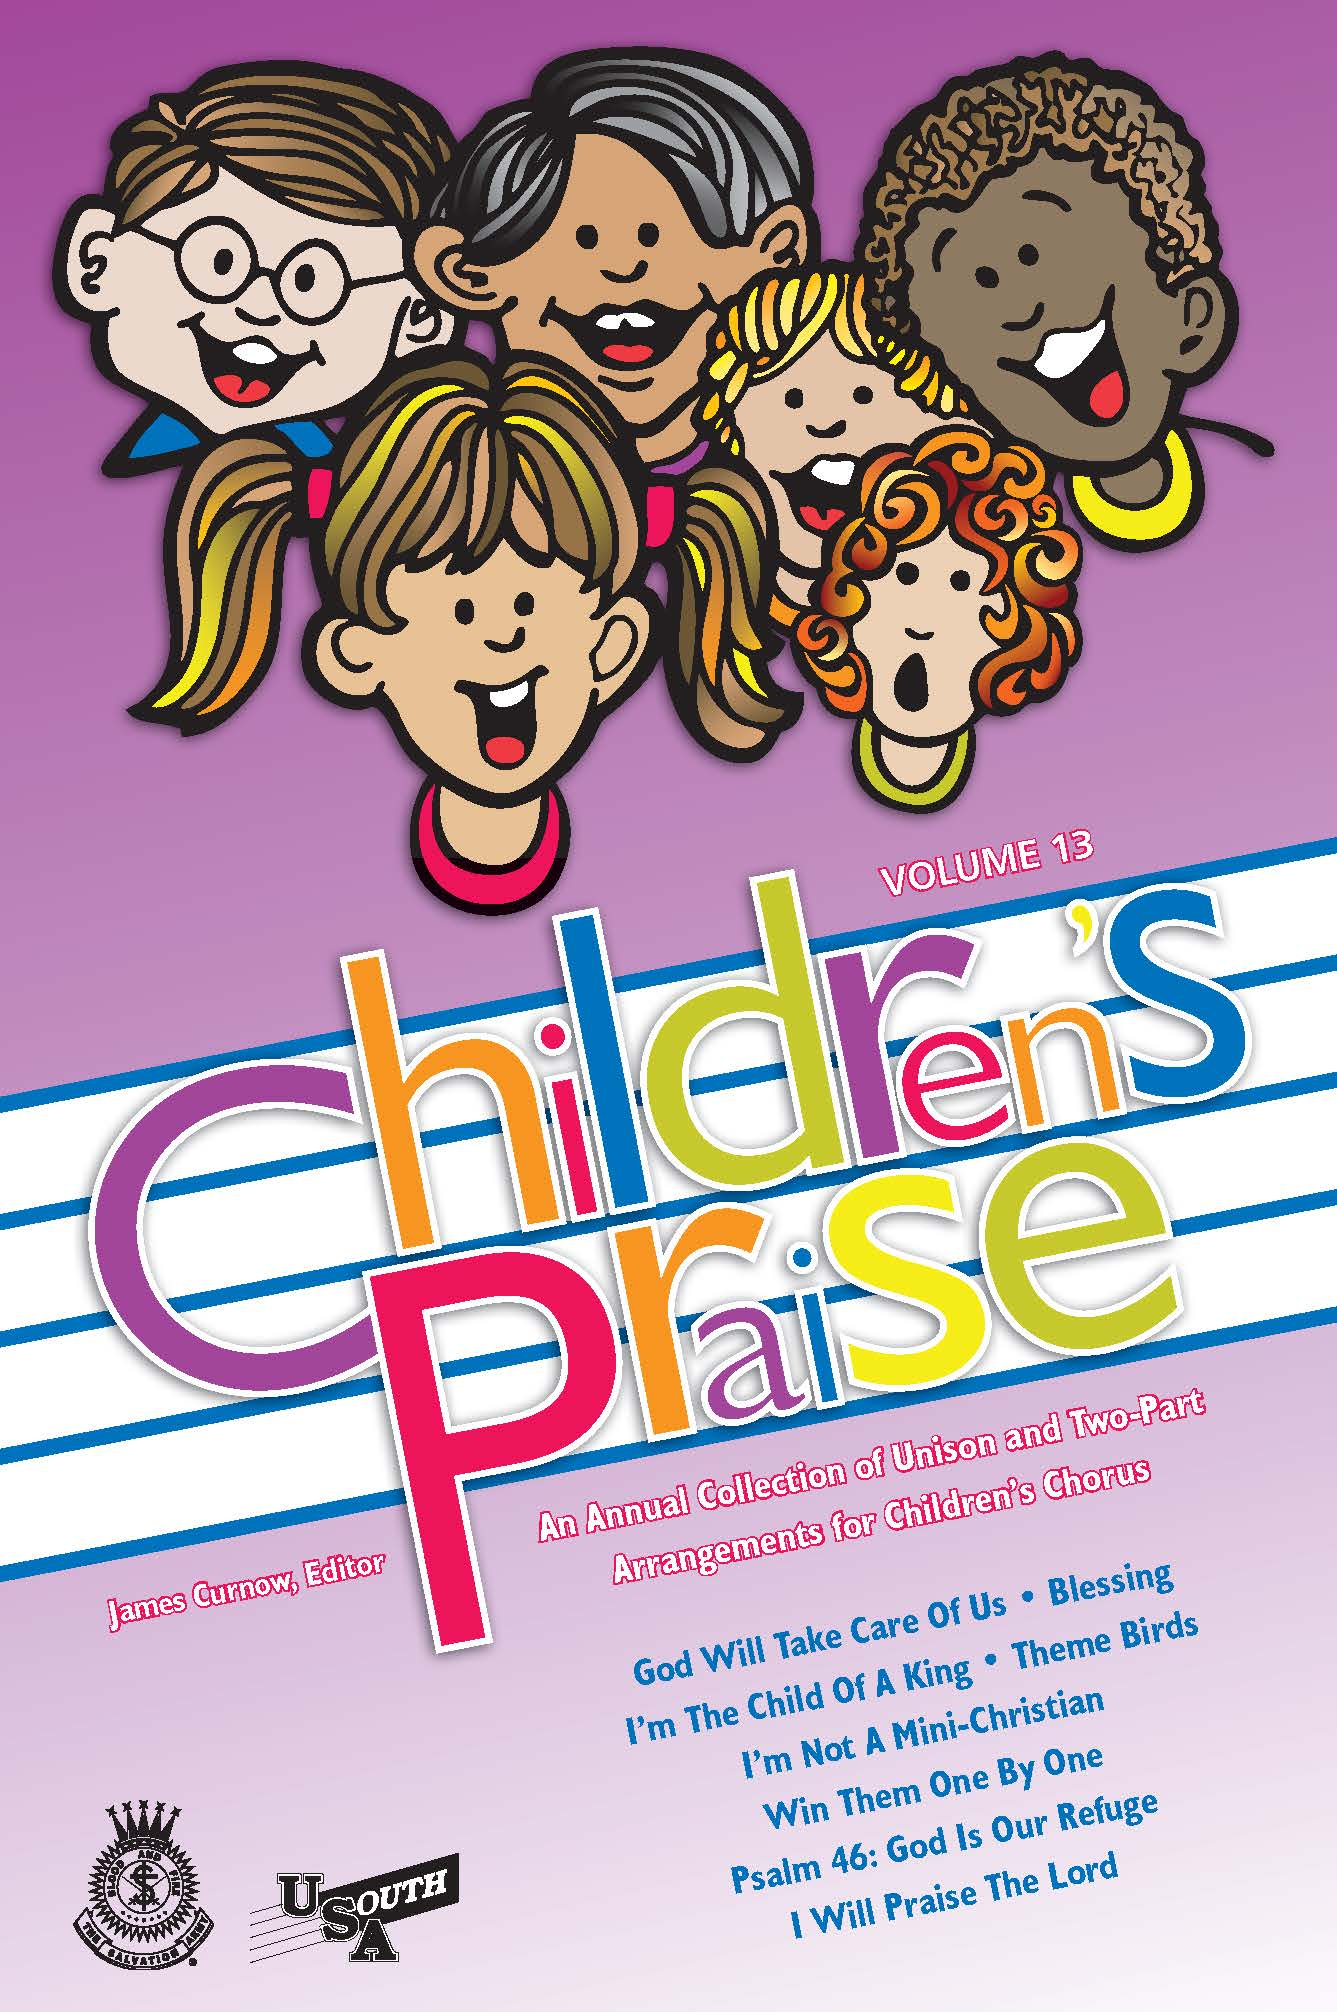 Children's Praise Cover_vol 13.jpg